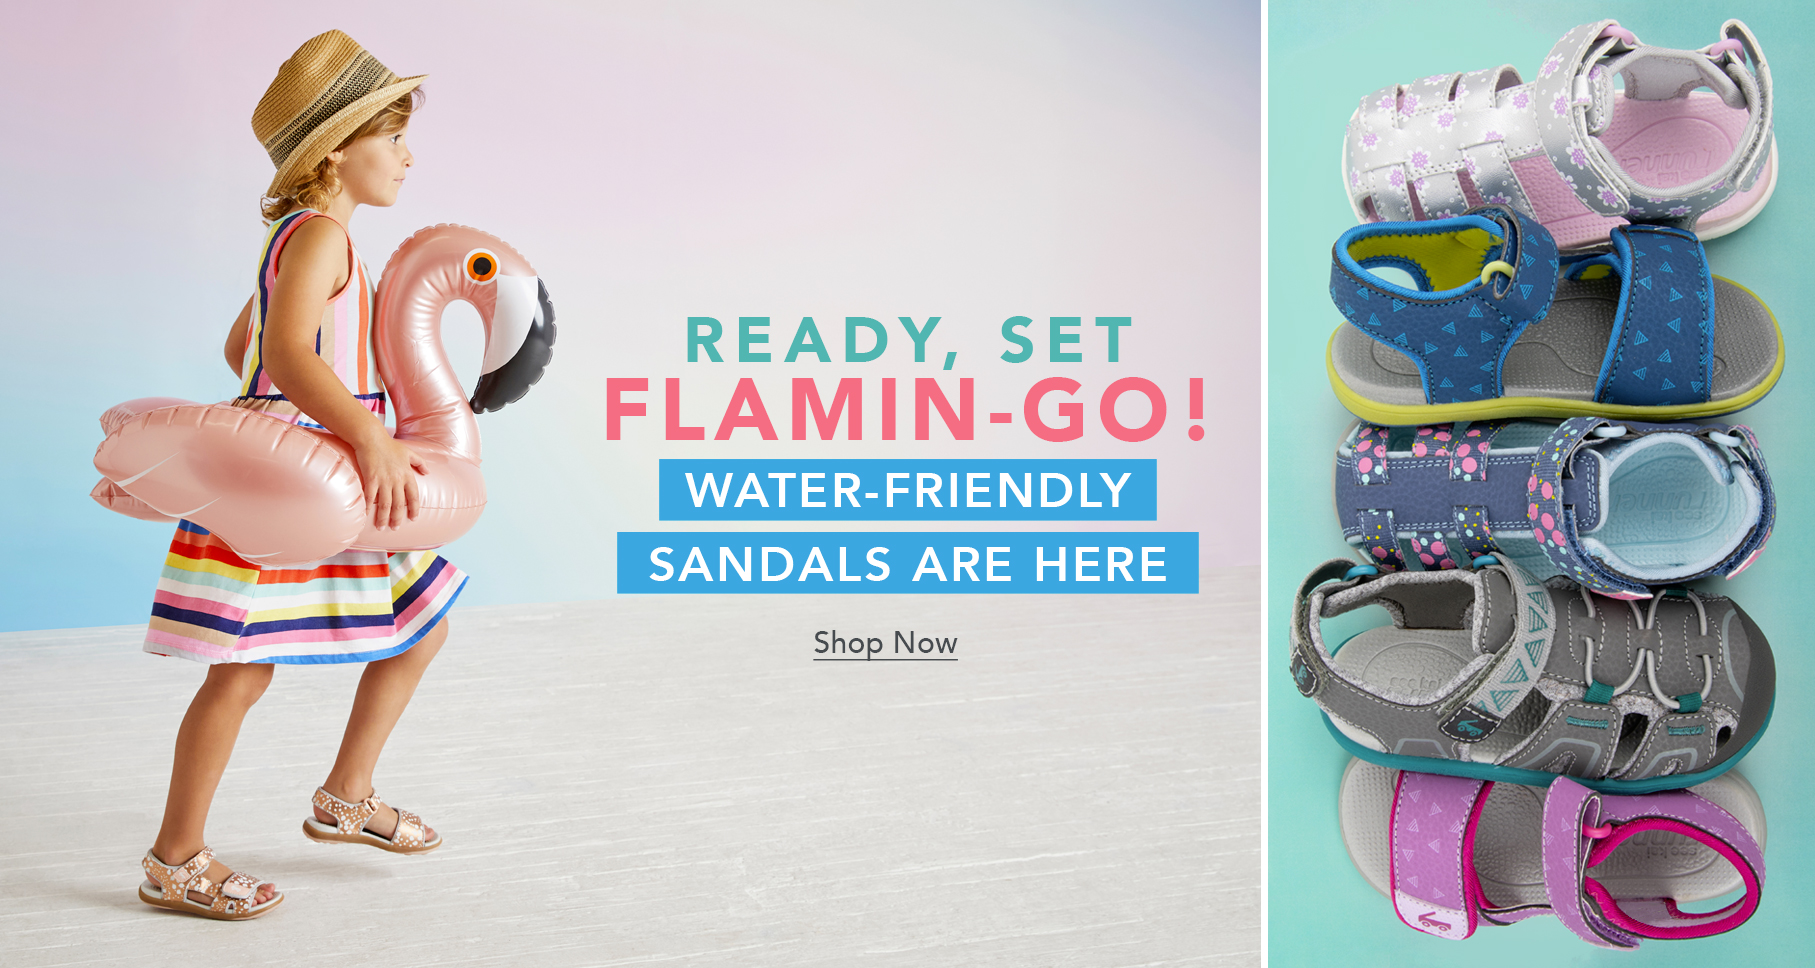 Ready, Set Flamin-go! Water-friendlu sandals are here. Shop Now.